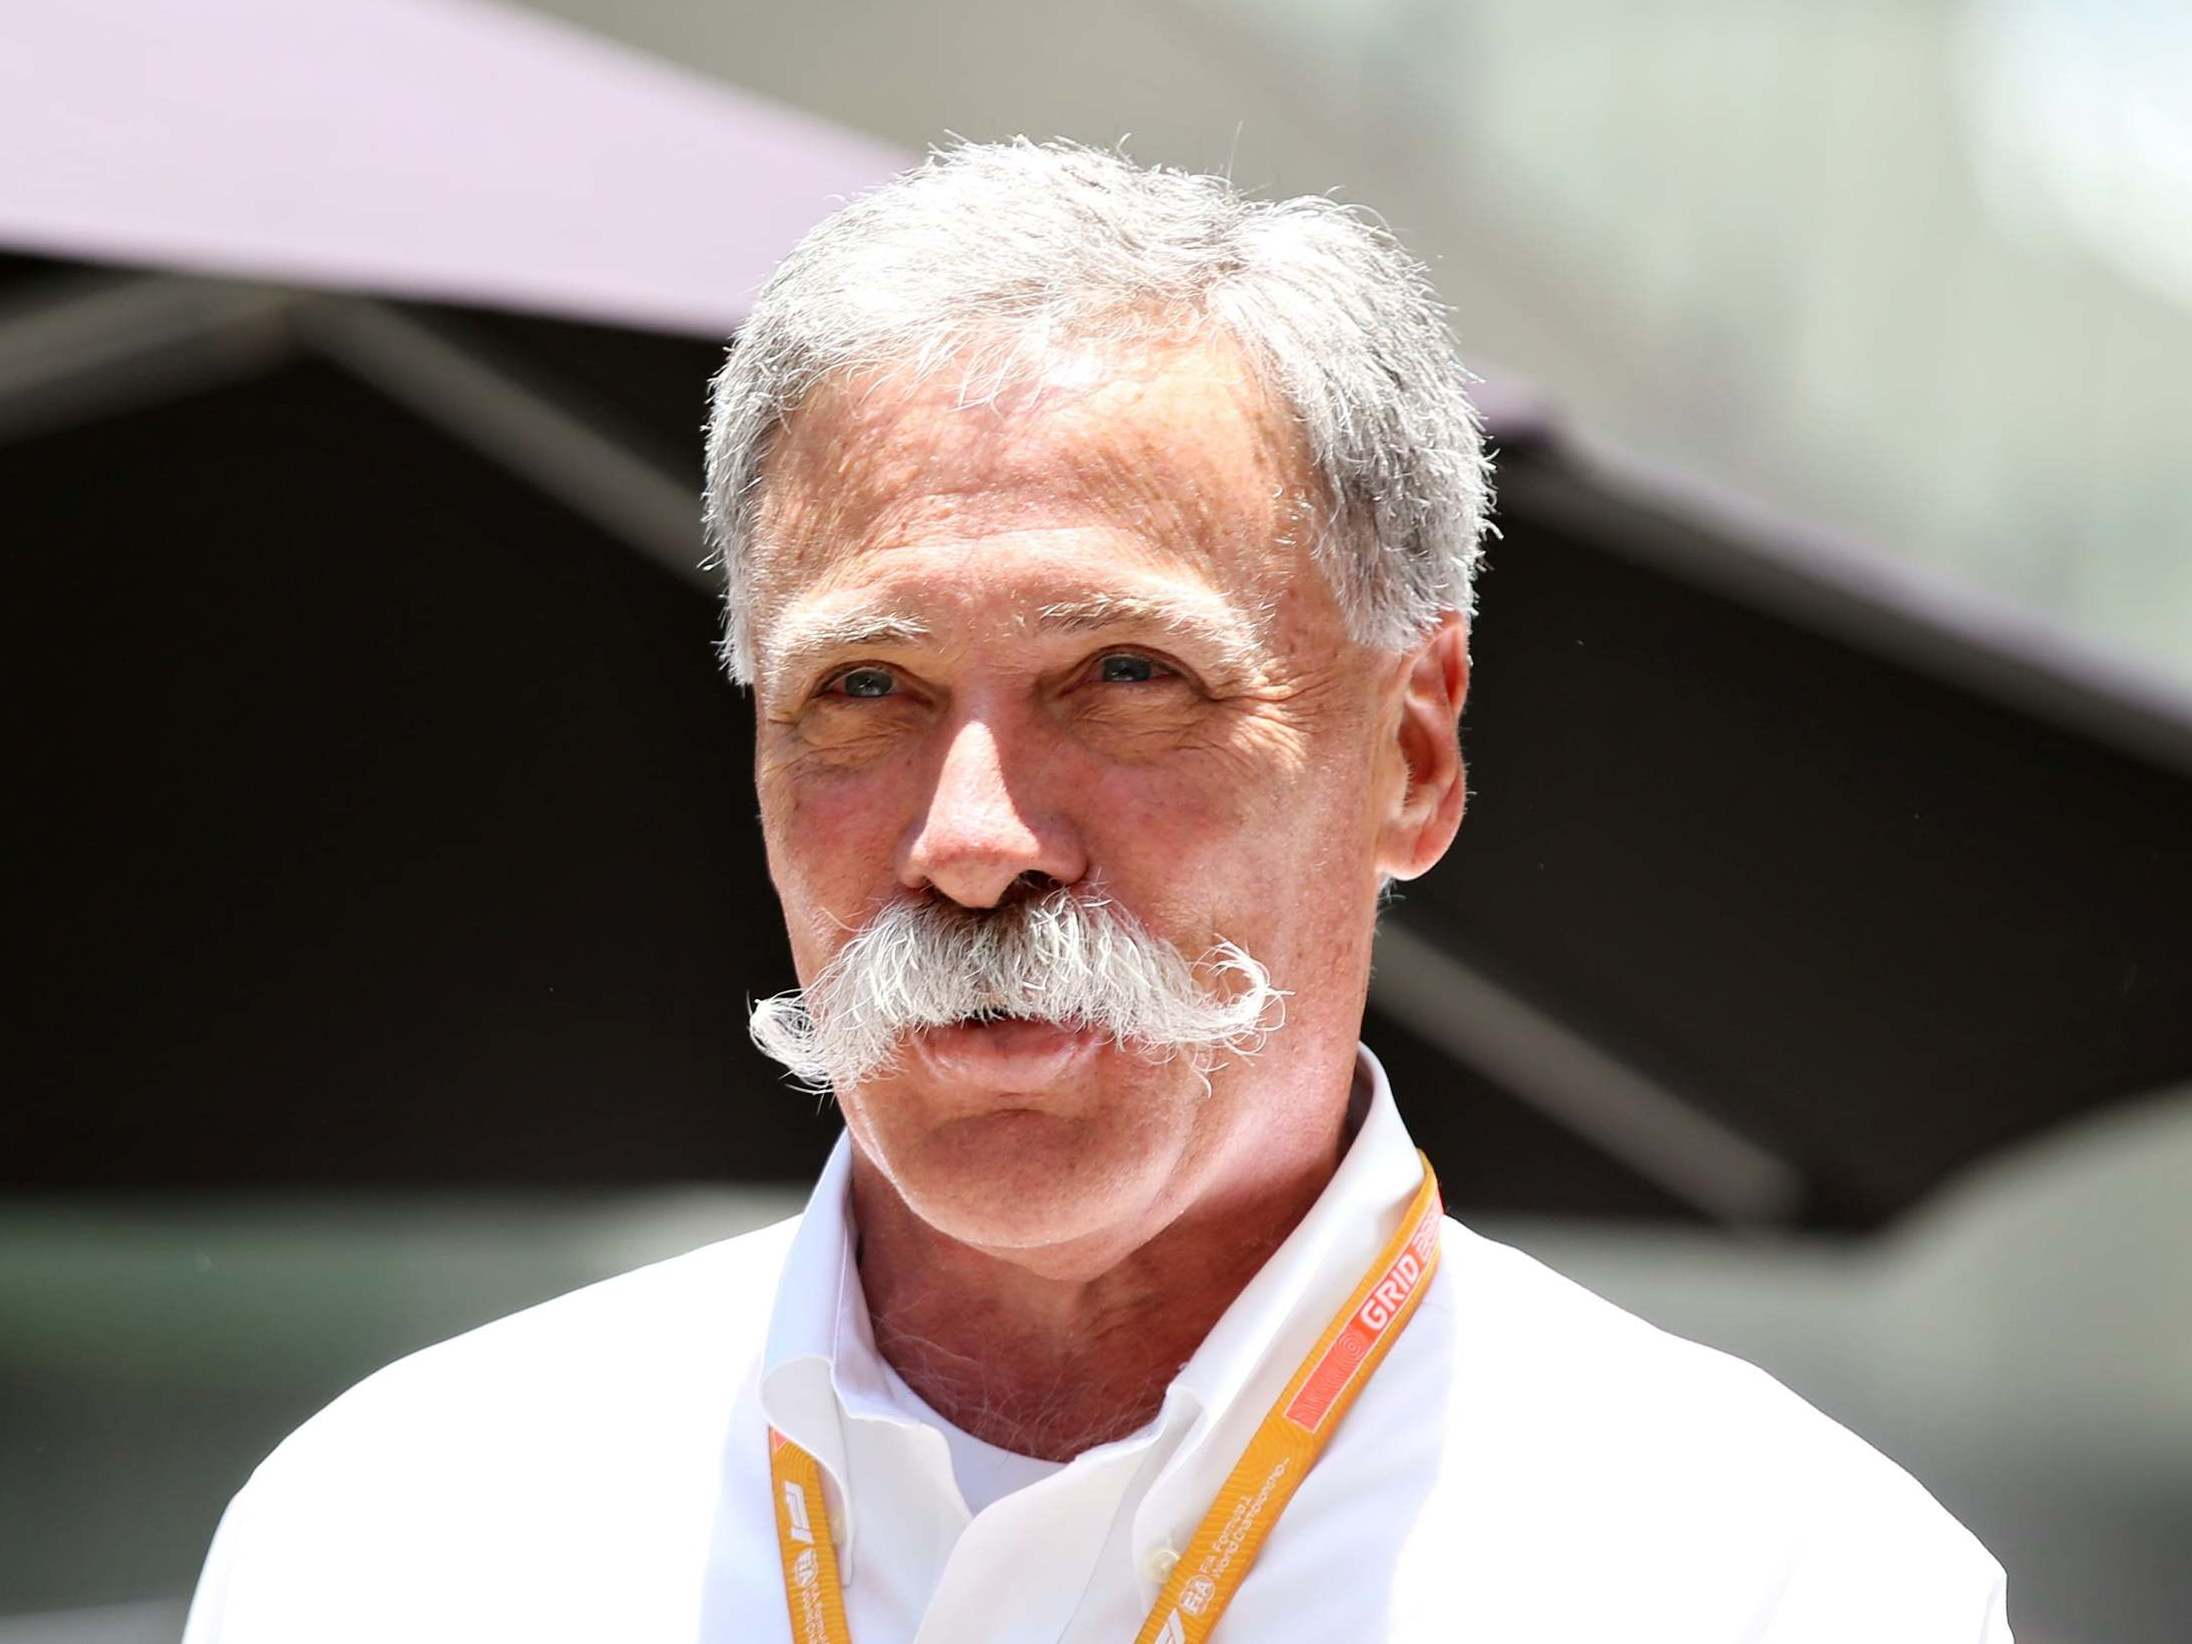 F1 boss Chase Carey attacks FIA over complicated rules that fans 'really can't follow'